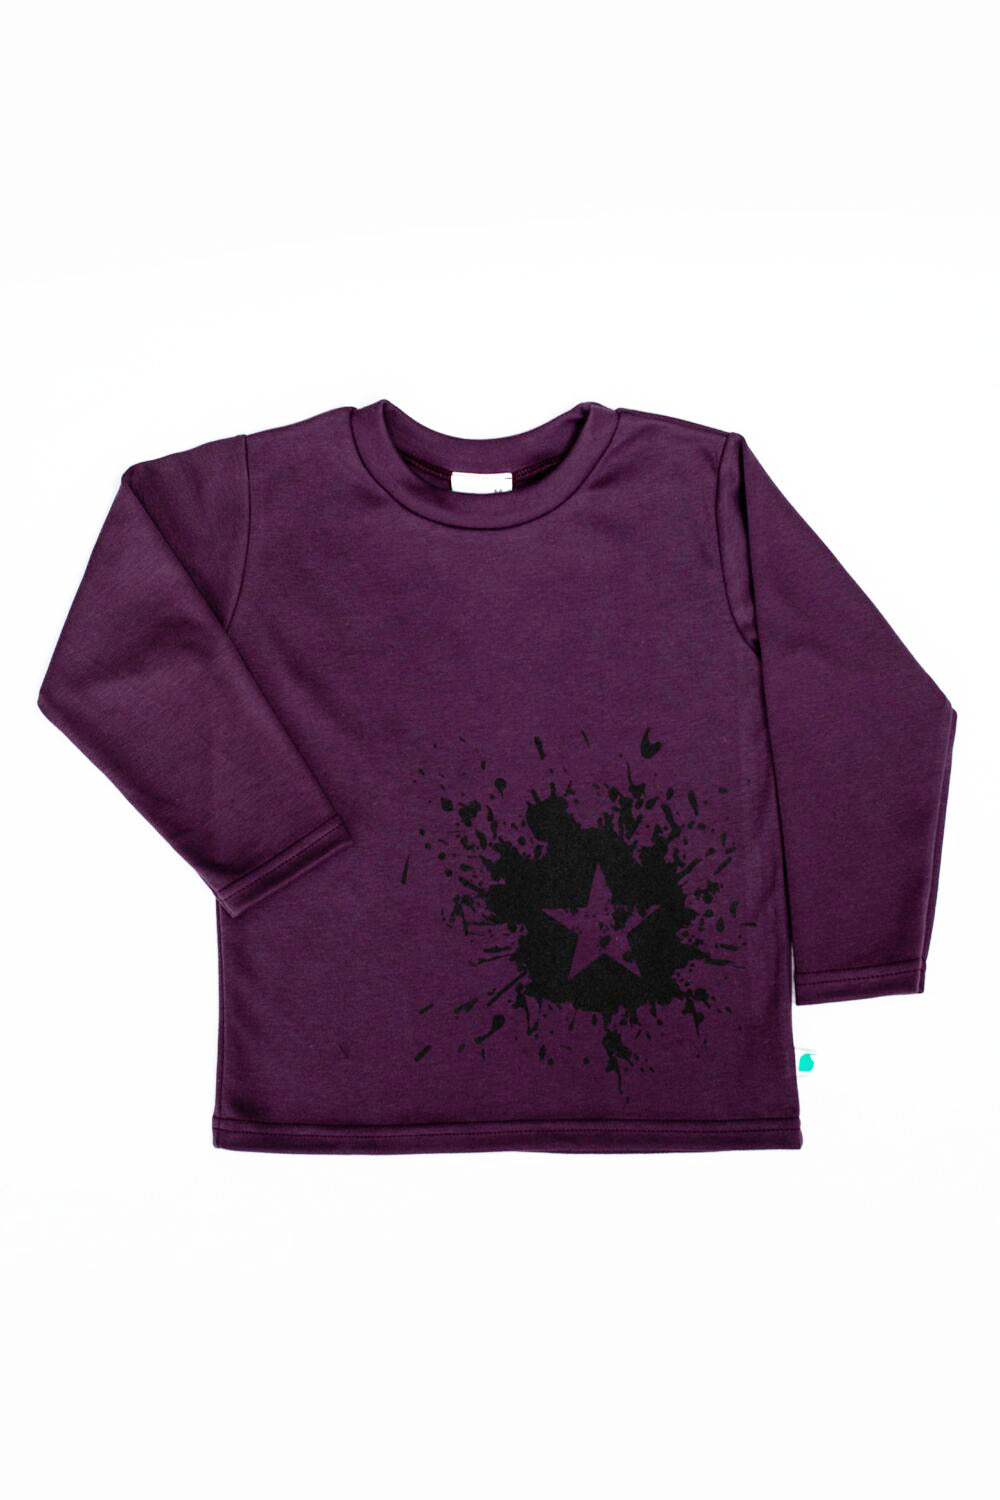 100% cotton, unisex punchy plum long sleeve t-shirt. Made and designed in Britain using chemical free inks.